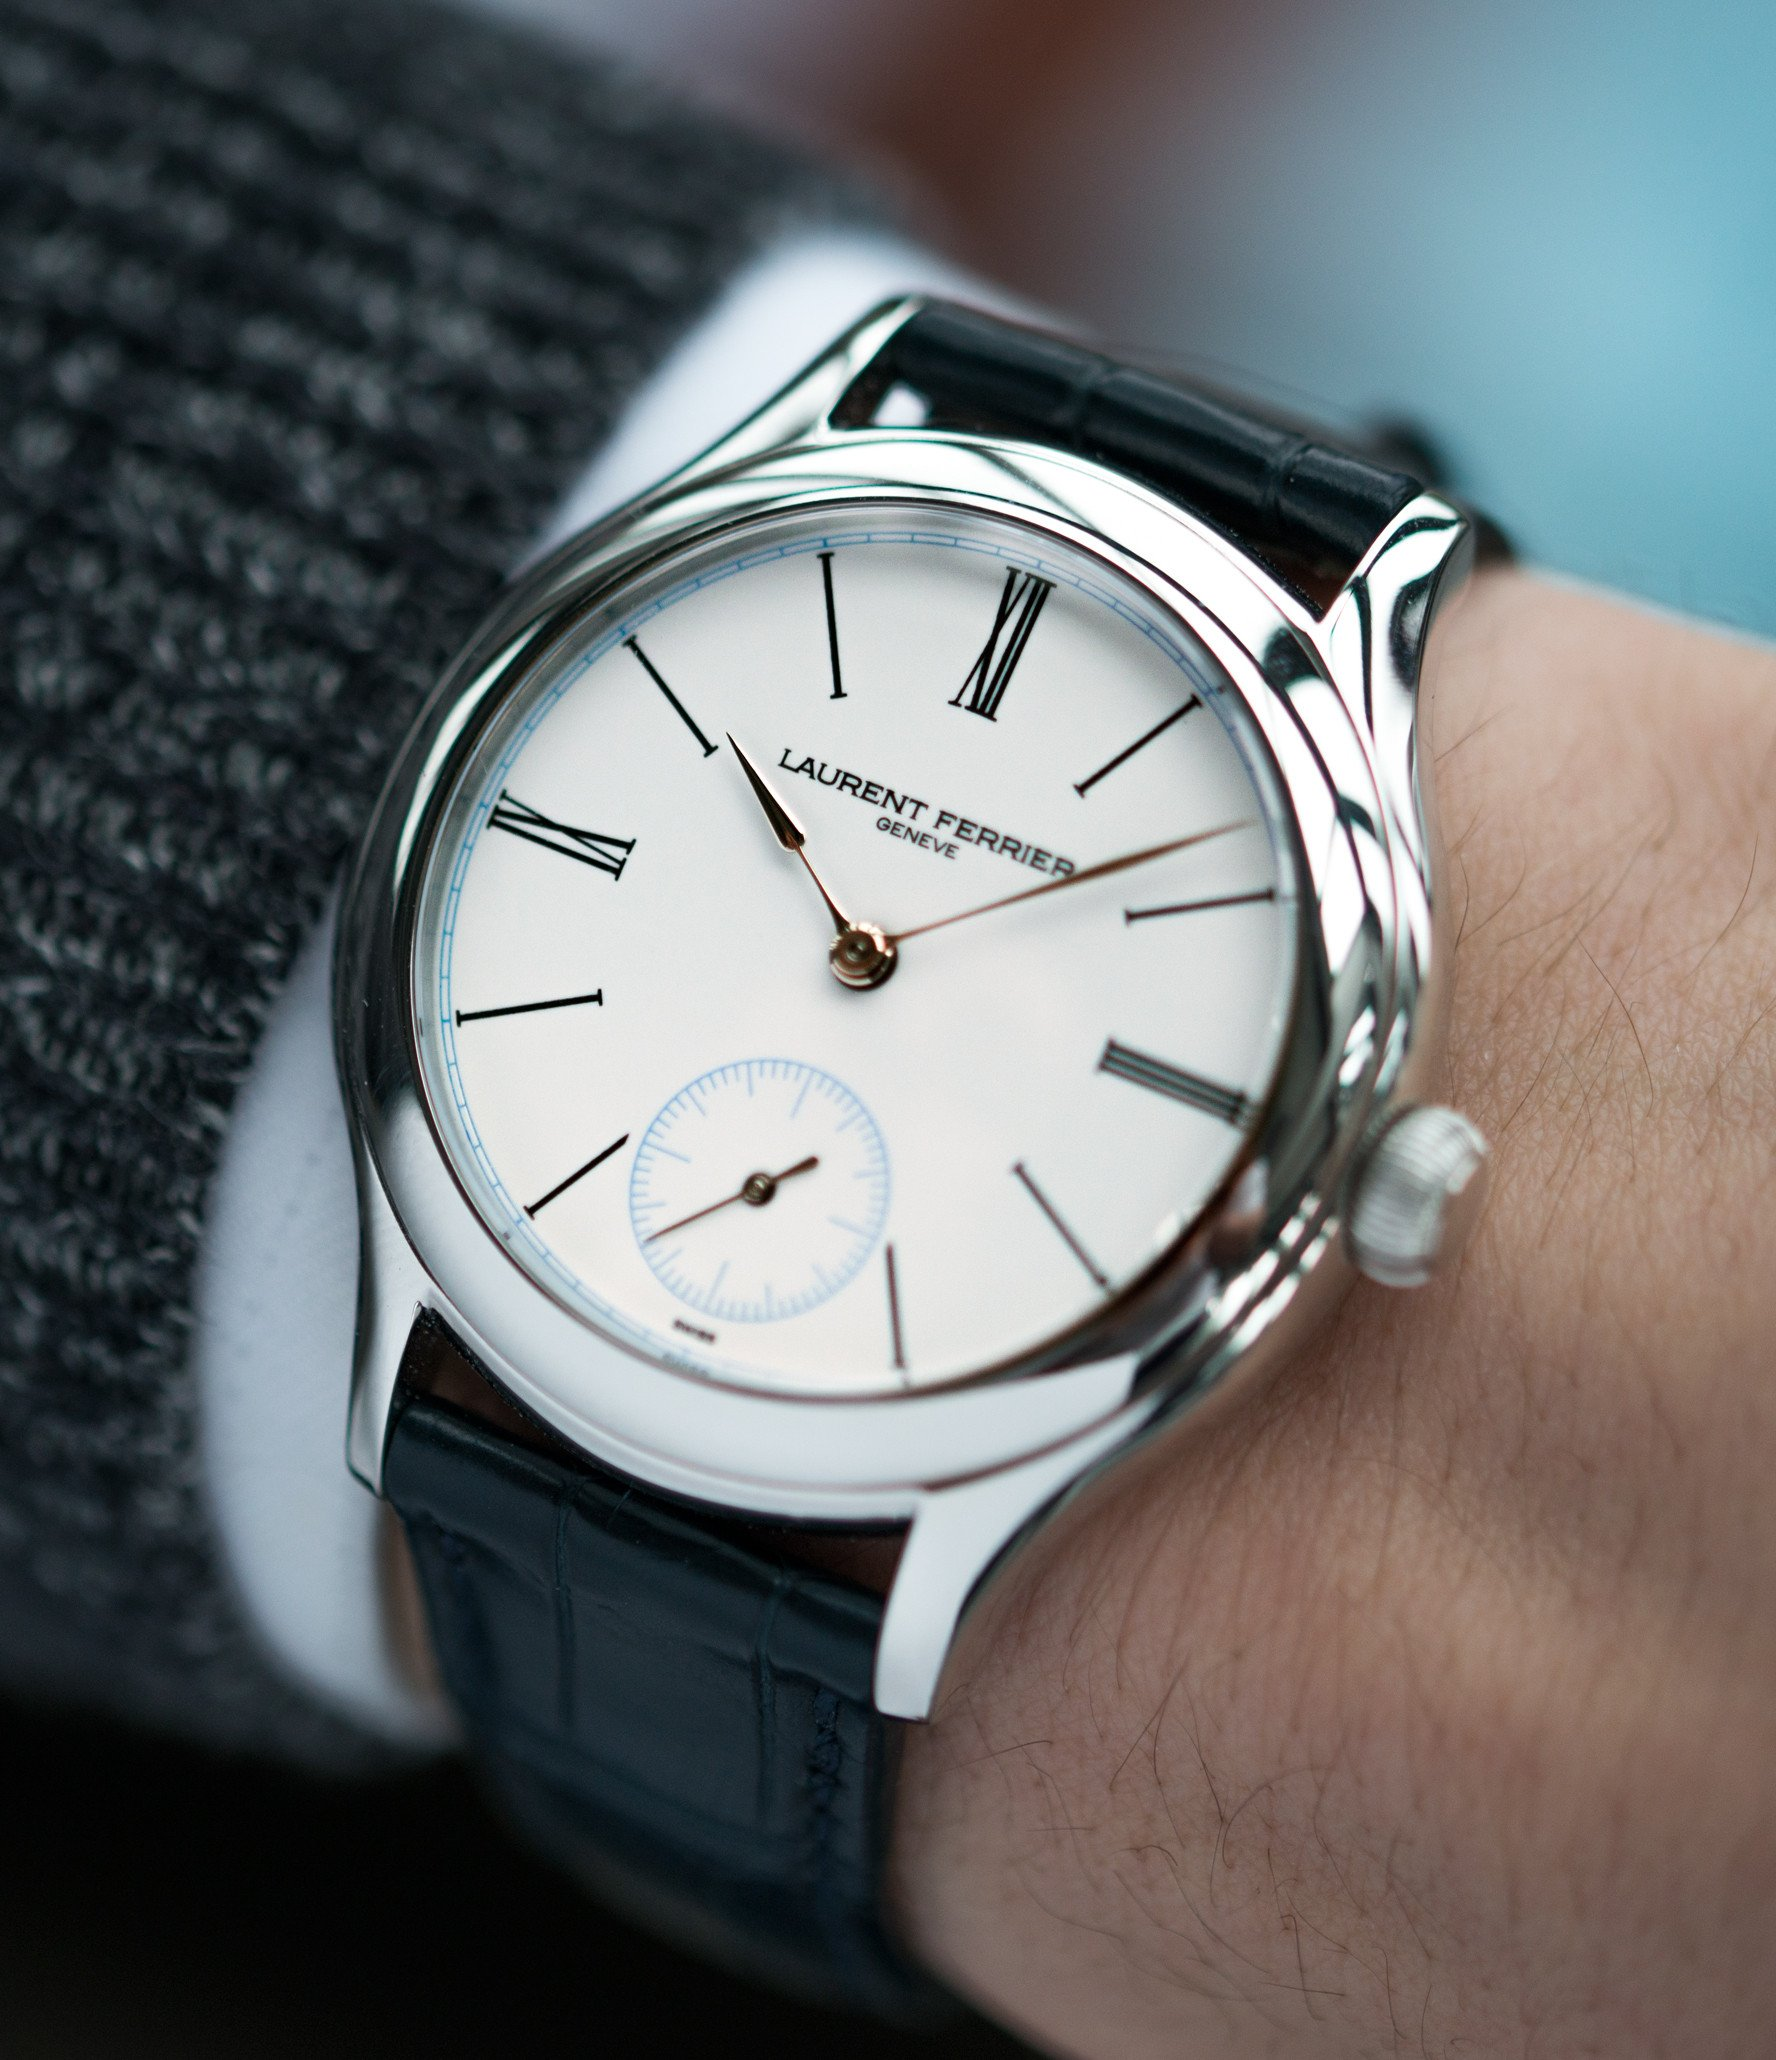 Laurent Ferrier watches for mens 2018